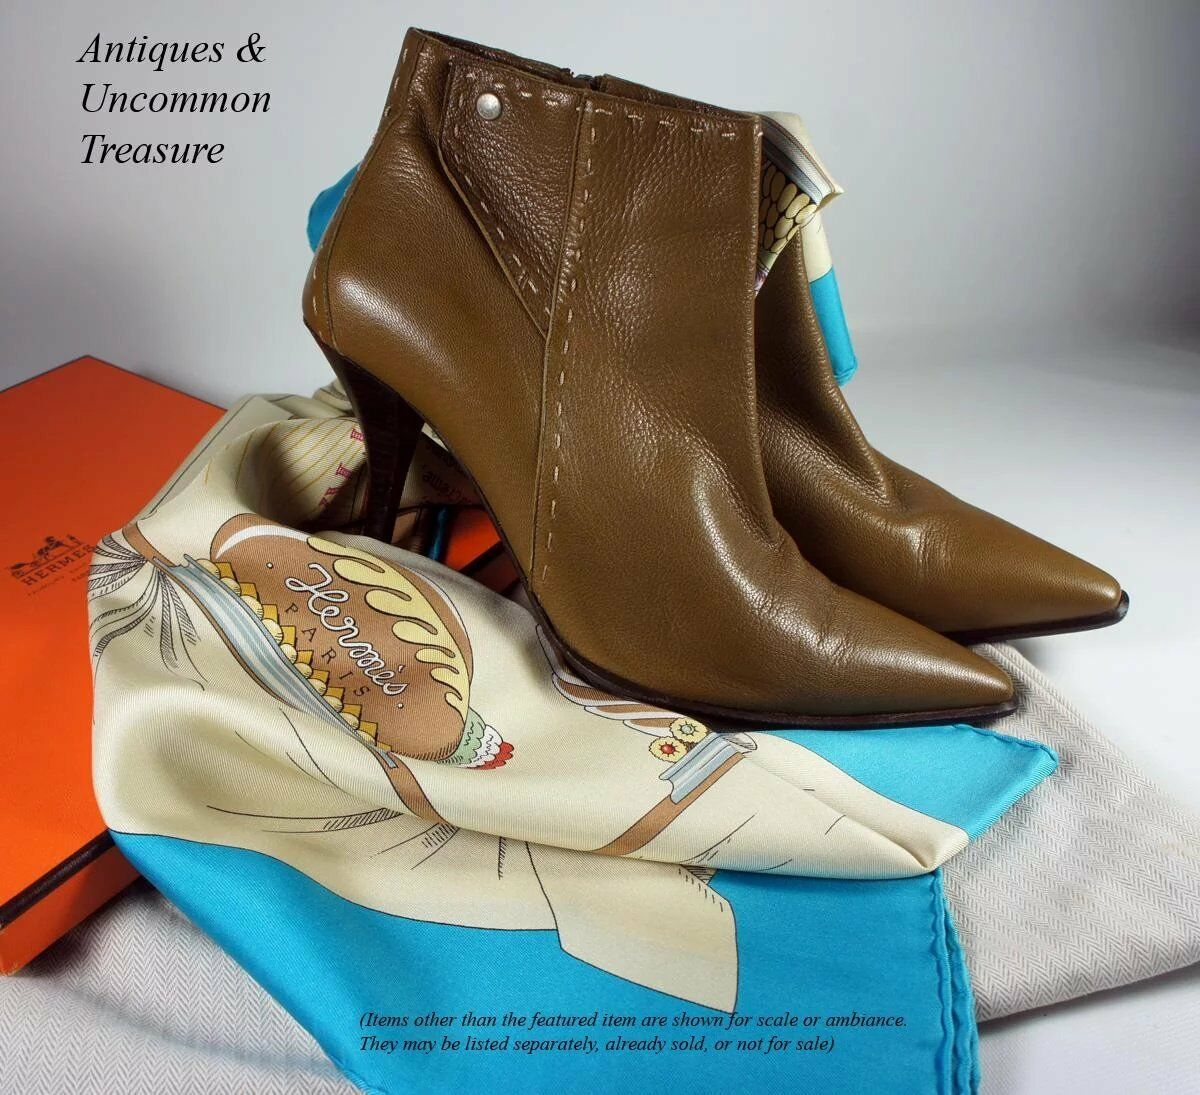 "Elegant HERMES Ankle Boots, Booties, in Camel Color, Cream Top Stitch, 3"" Heel"